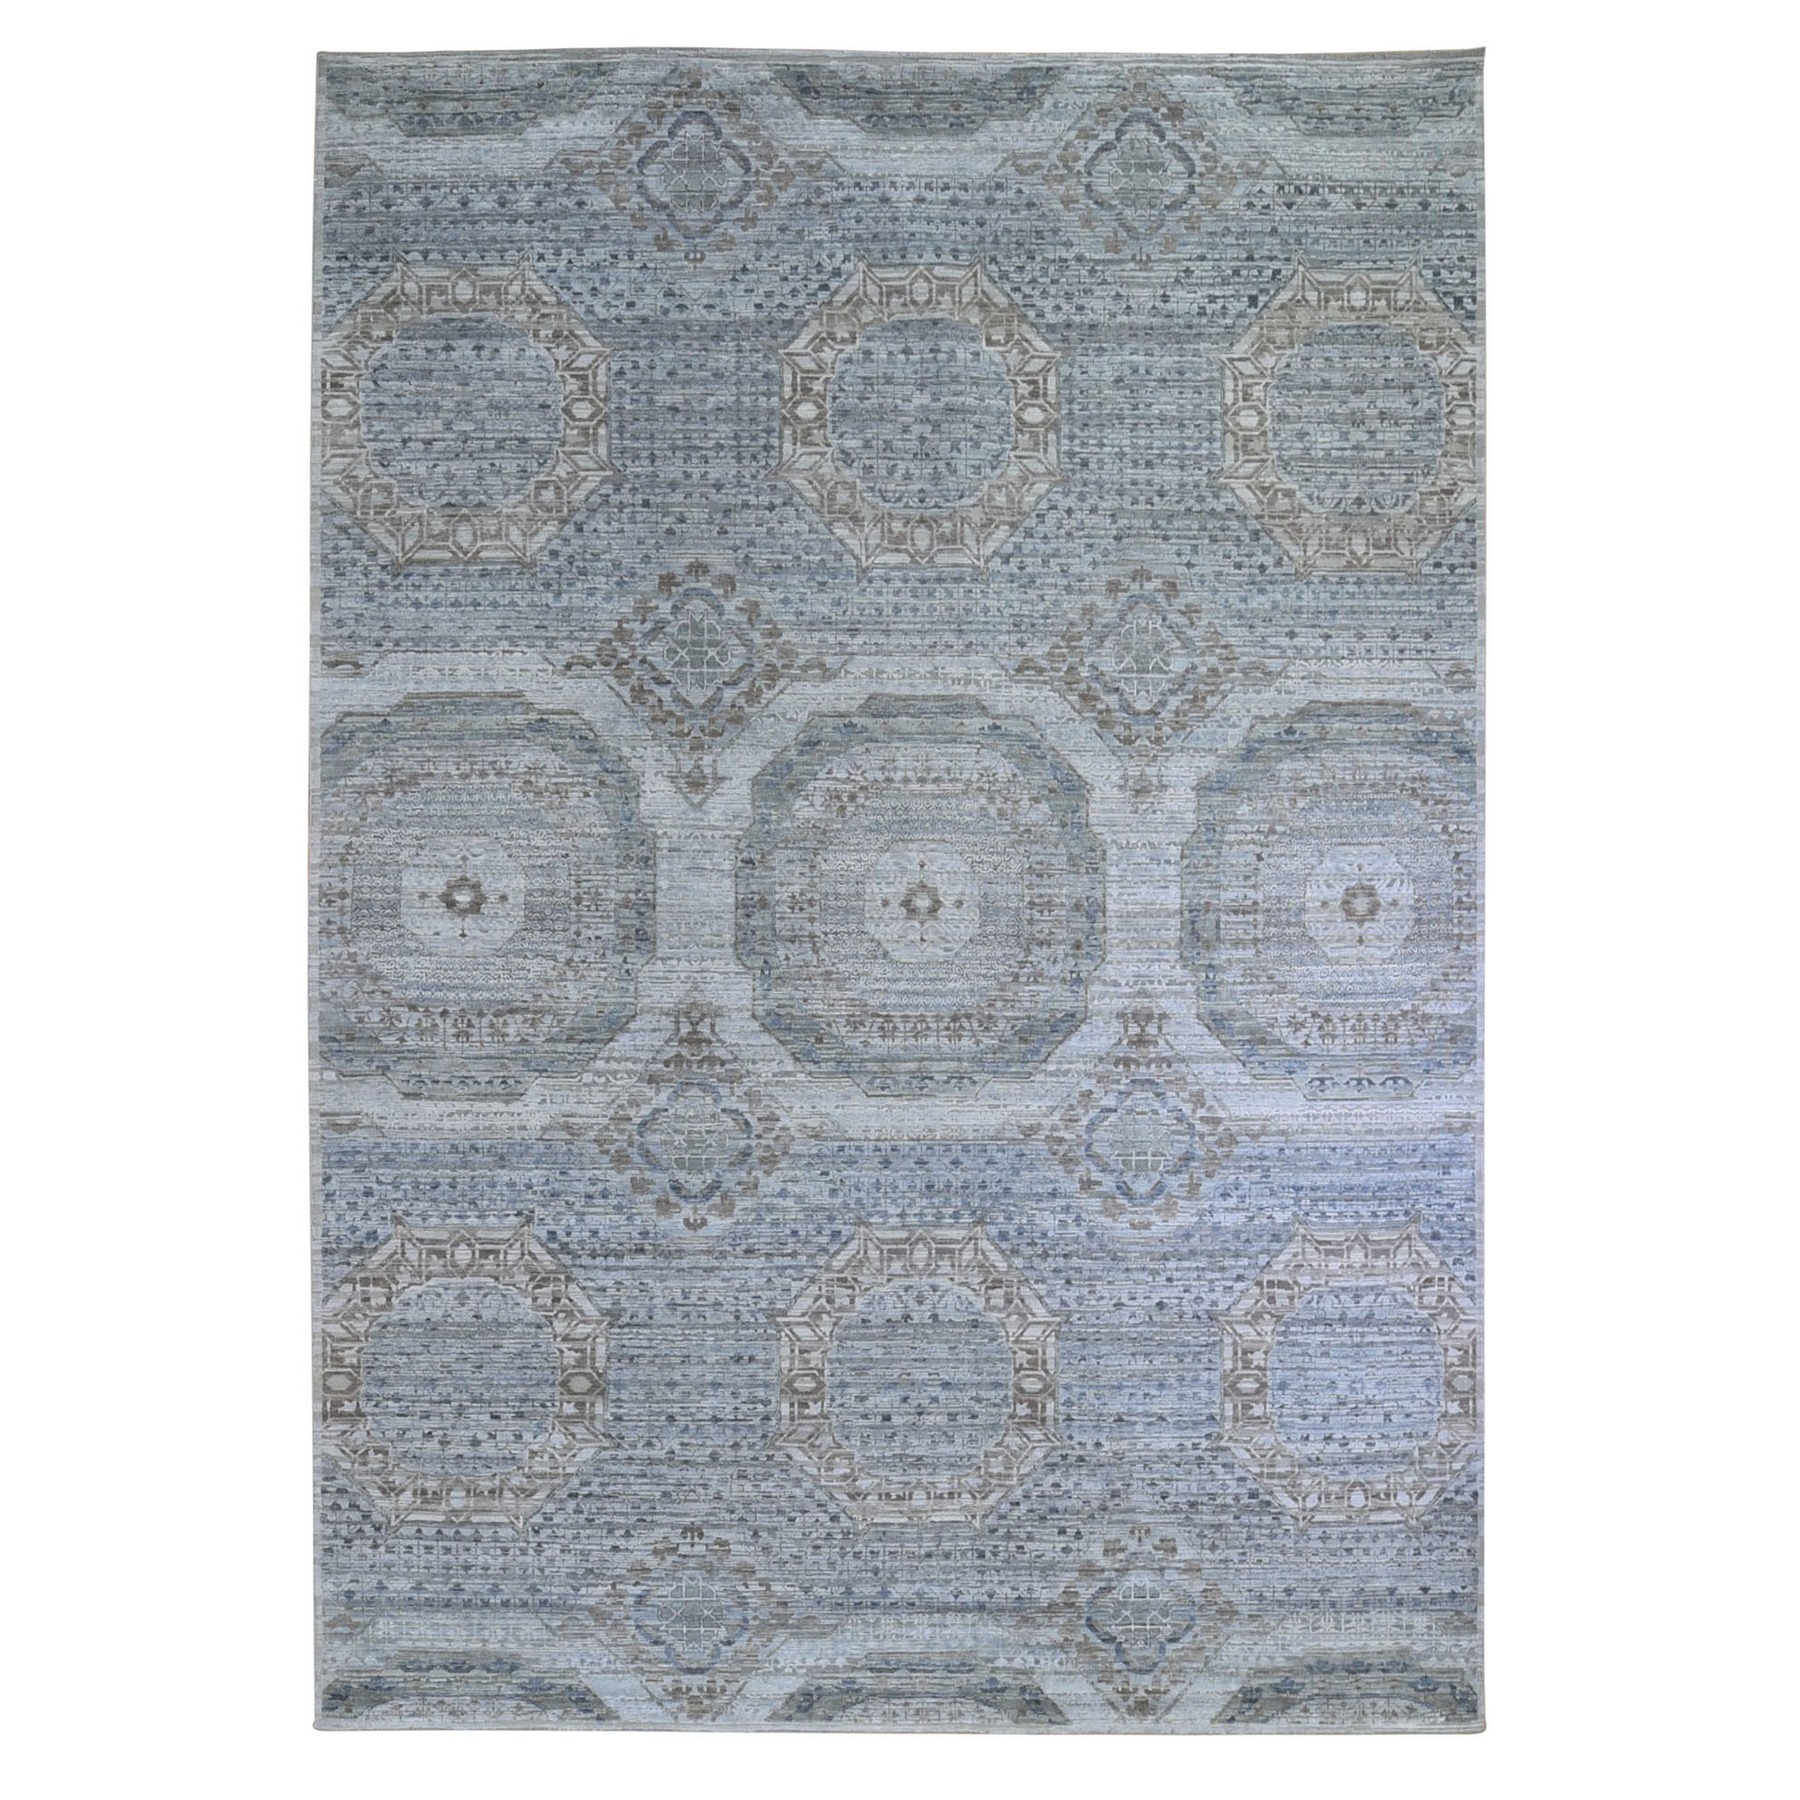 Intricate Collection Hand Knotted Grey Rug No: 1132748